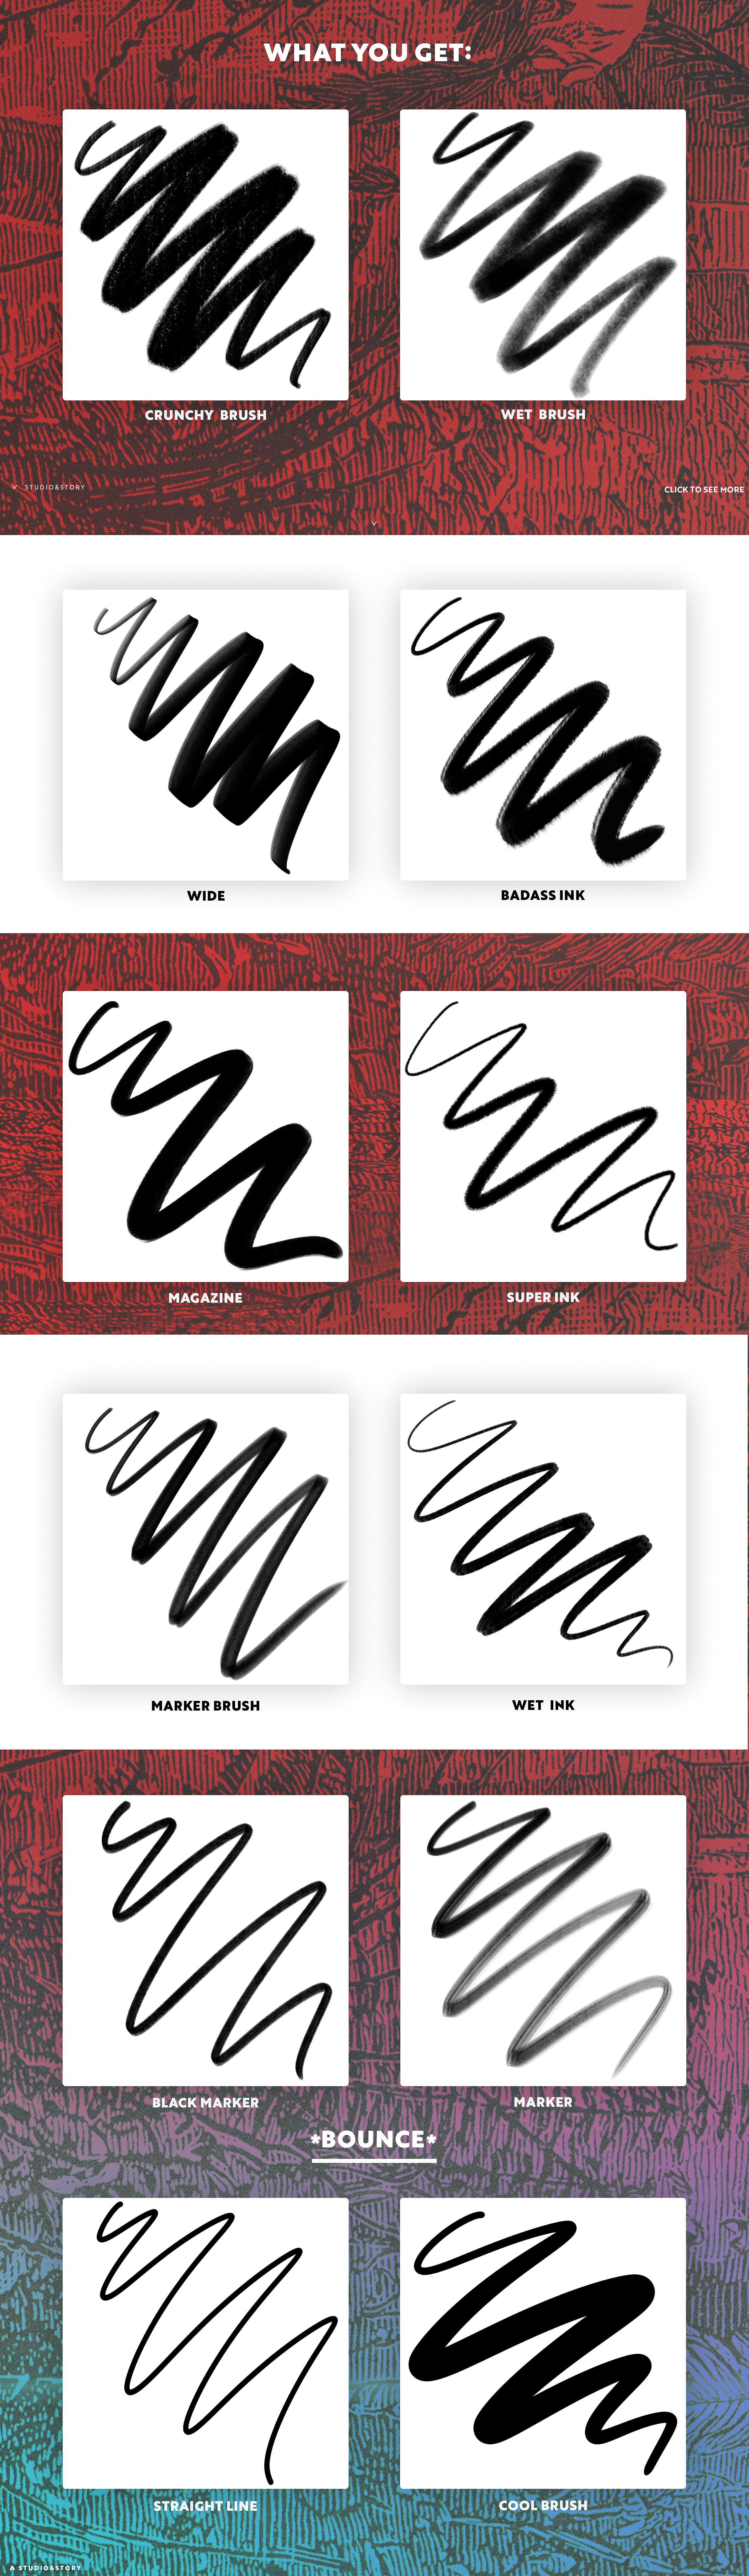 12款真实手写毛笔Procreate笔刷 12 Lettering Brushes for Procreate插图(6)